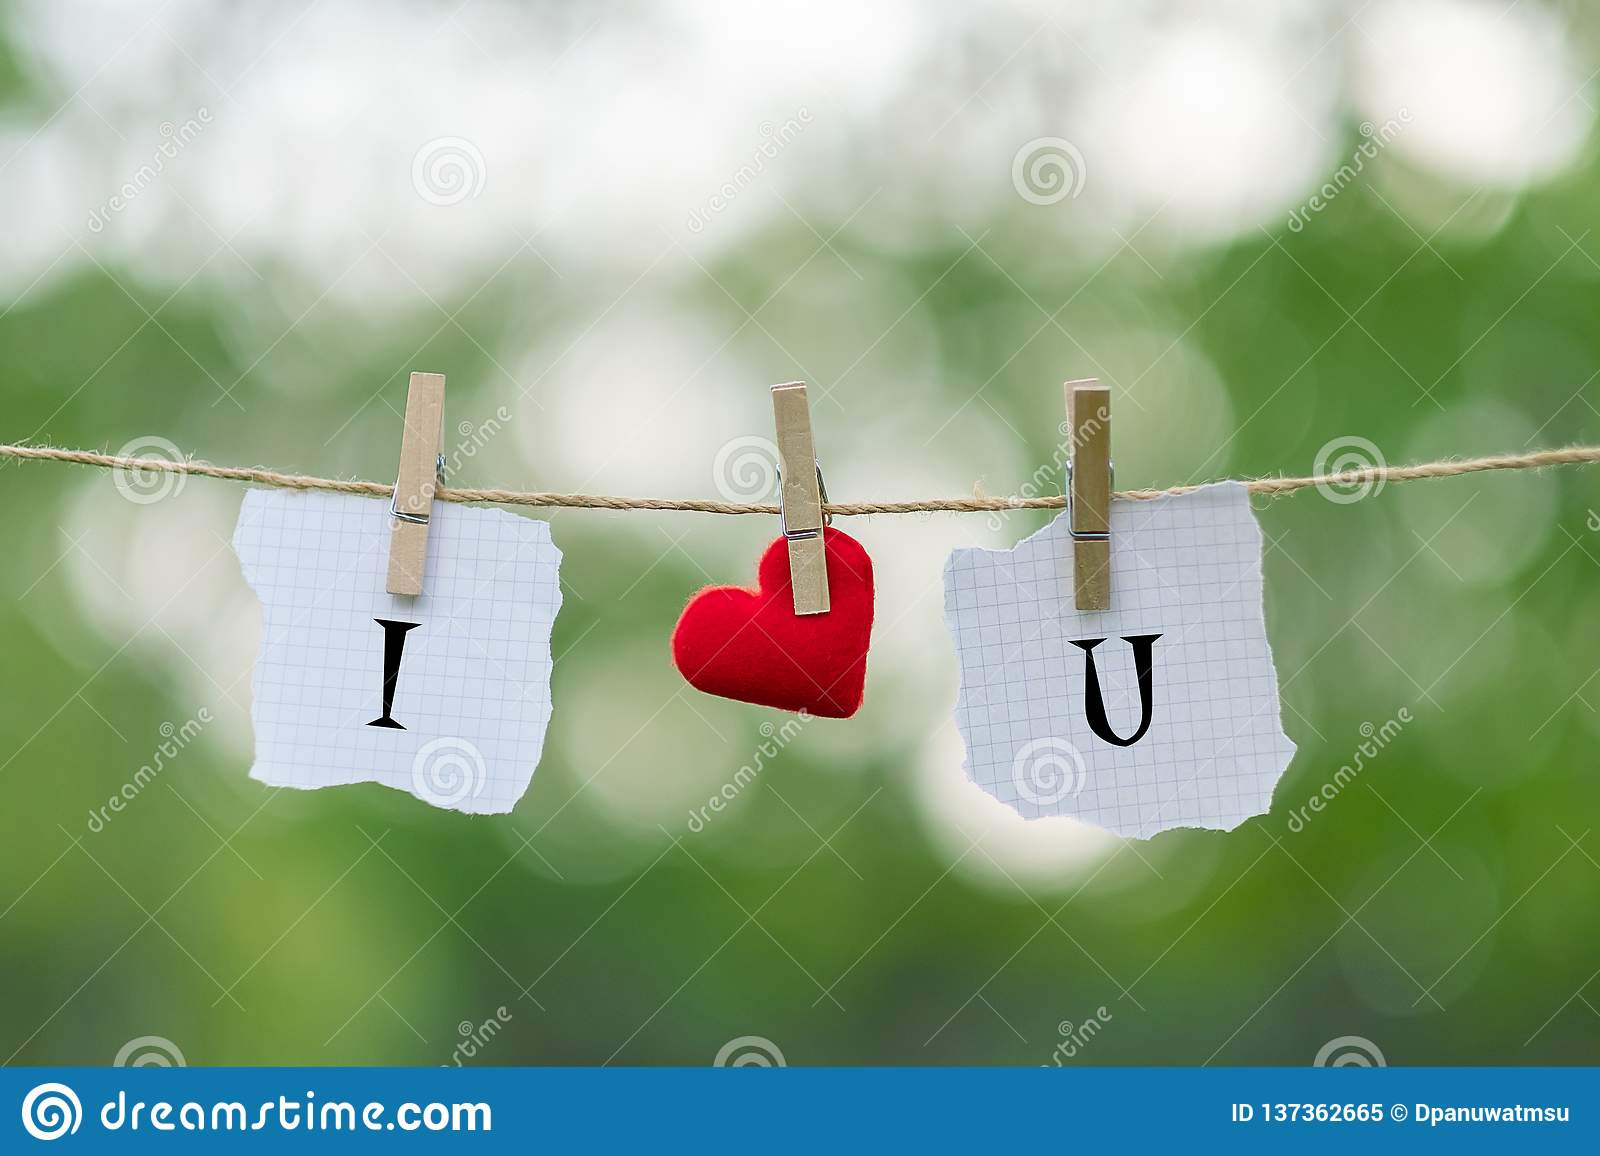 I LOVE YOU word on paper and red heart shape decoration hanging on line with copy space for text on green nature background. Love